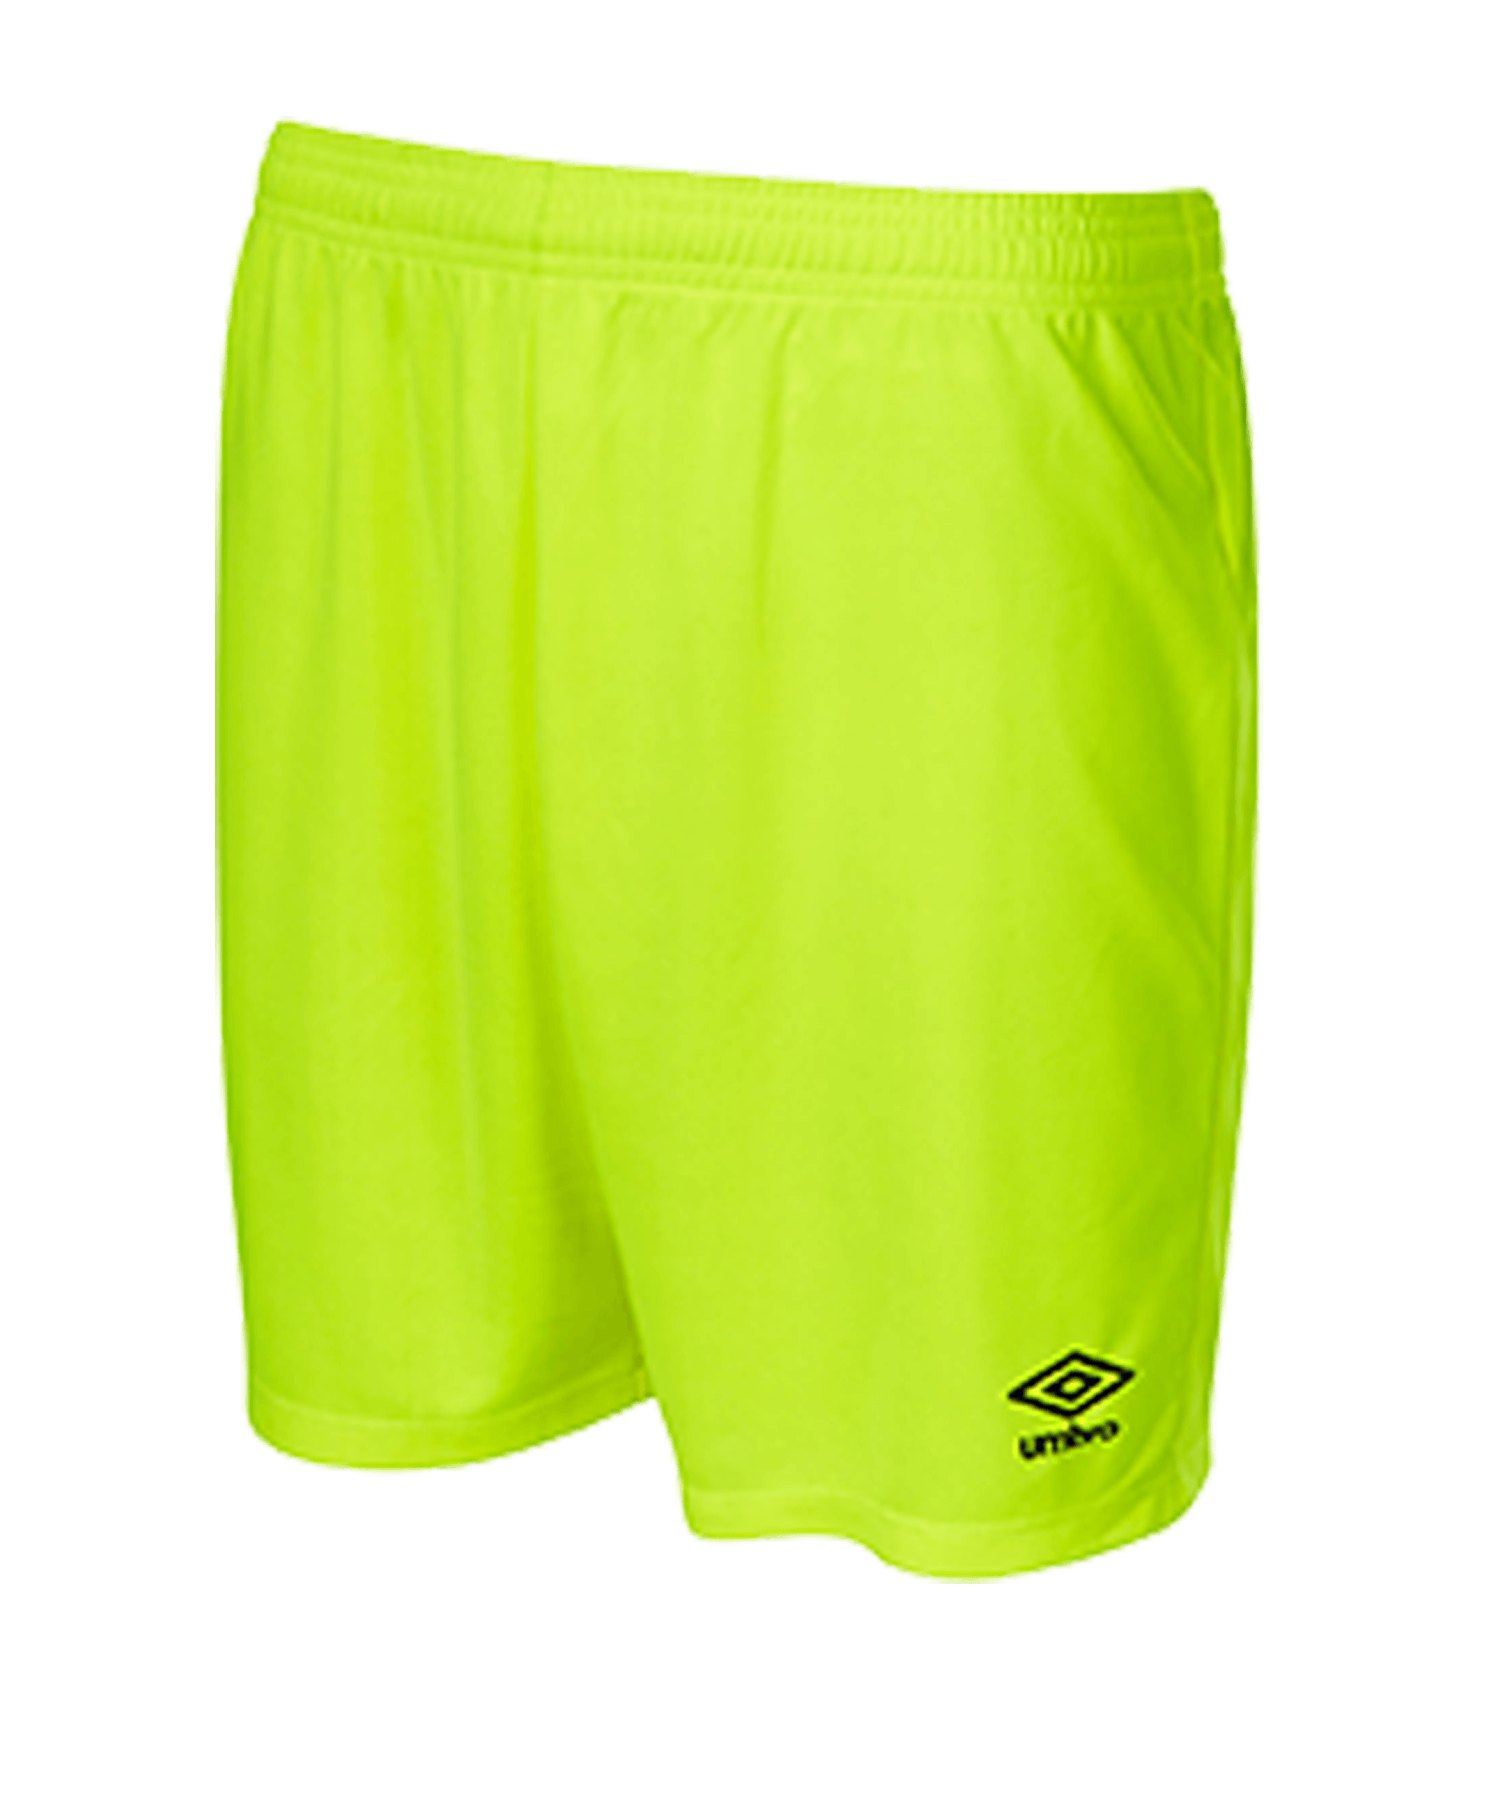 Umbro New Club Short Gelb FFSZ - Gelb